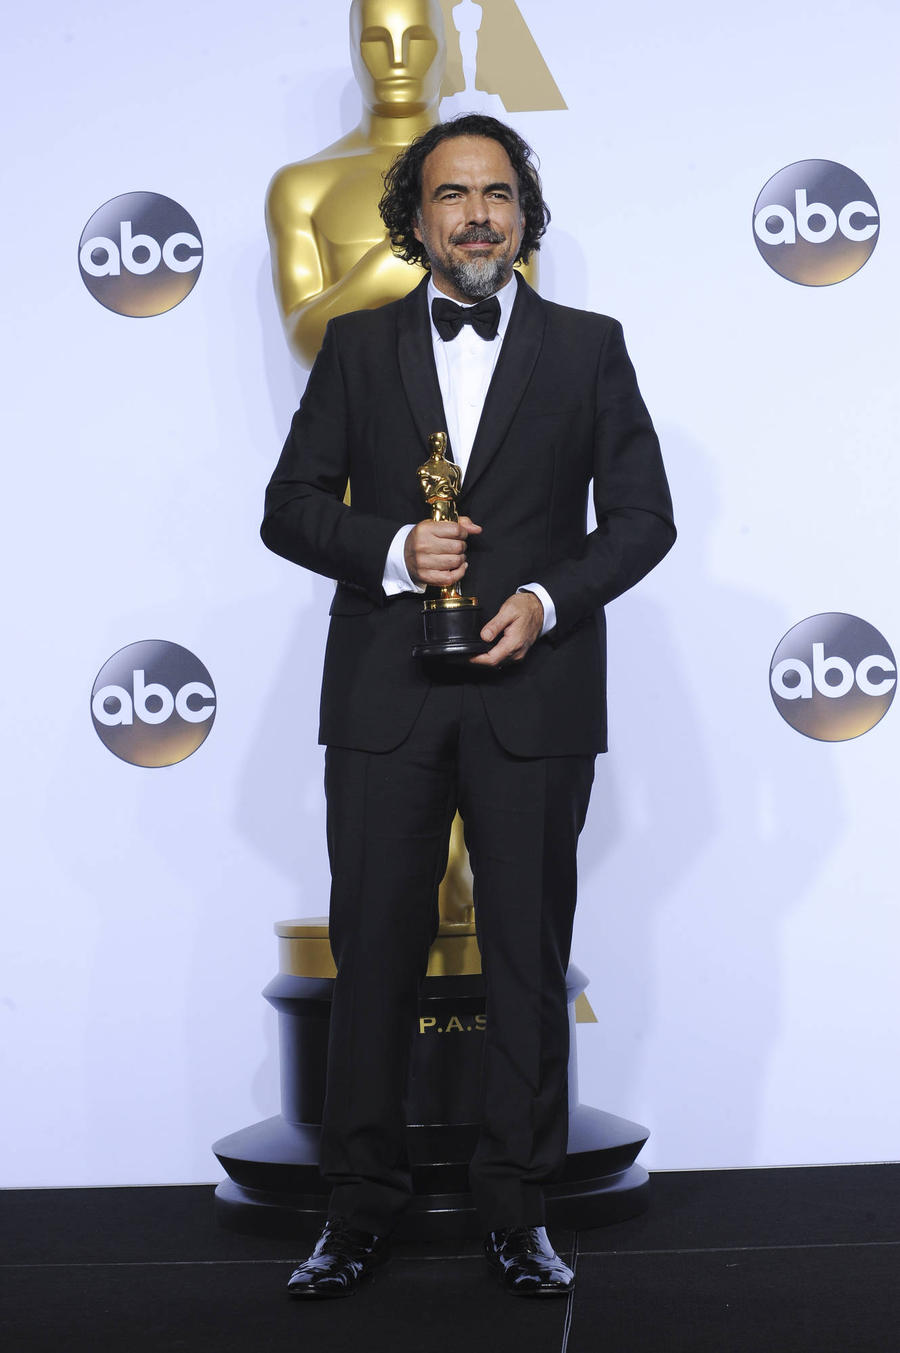 Alejandro Gonzalez Inarritu Dismisses 'Mean-spirited' Oscars Snub